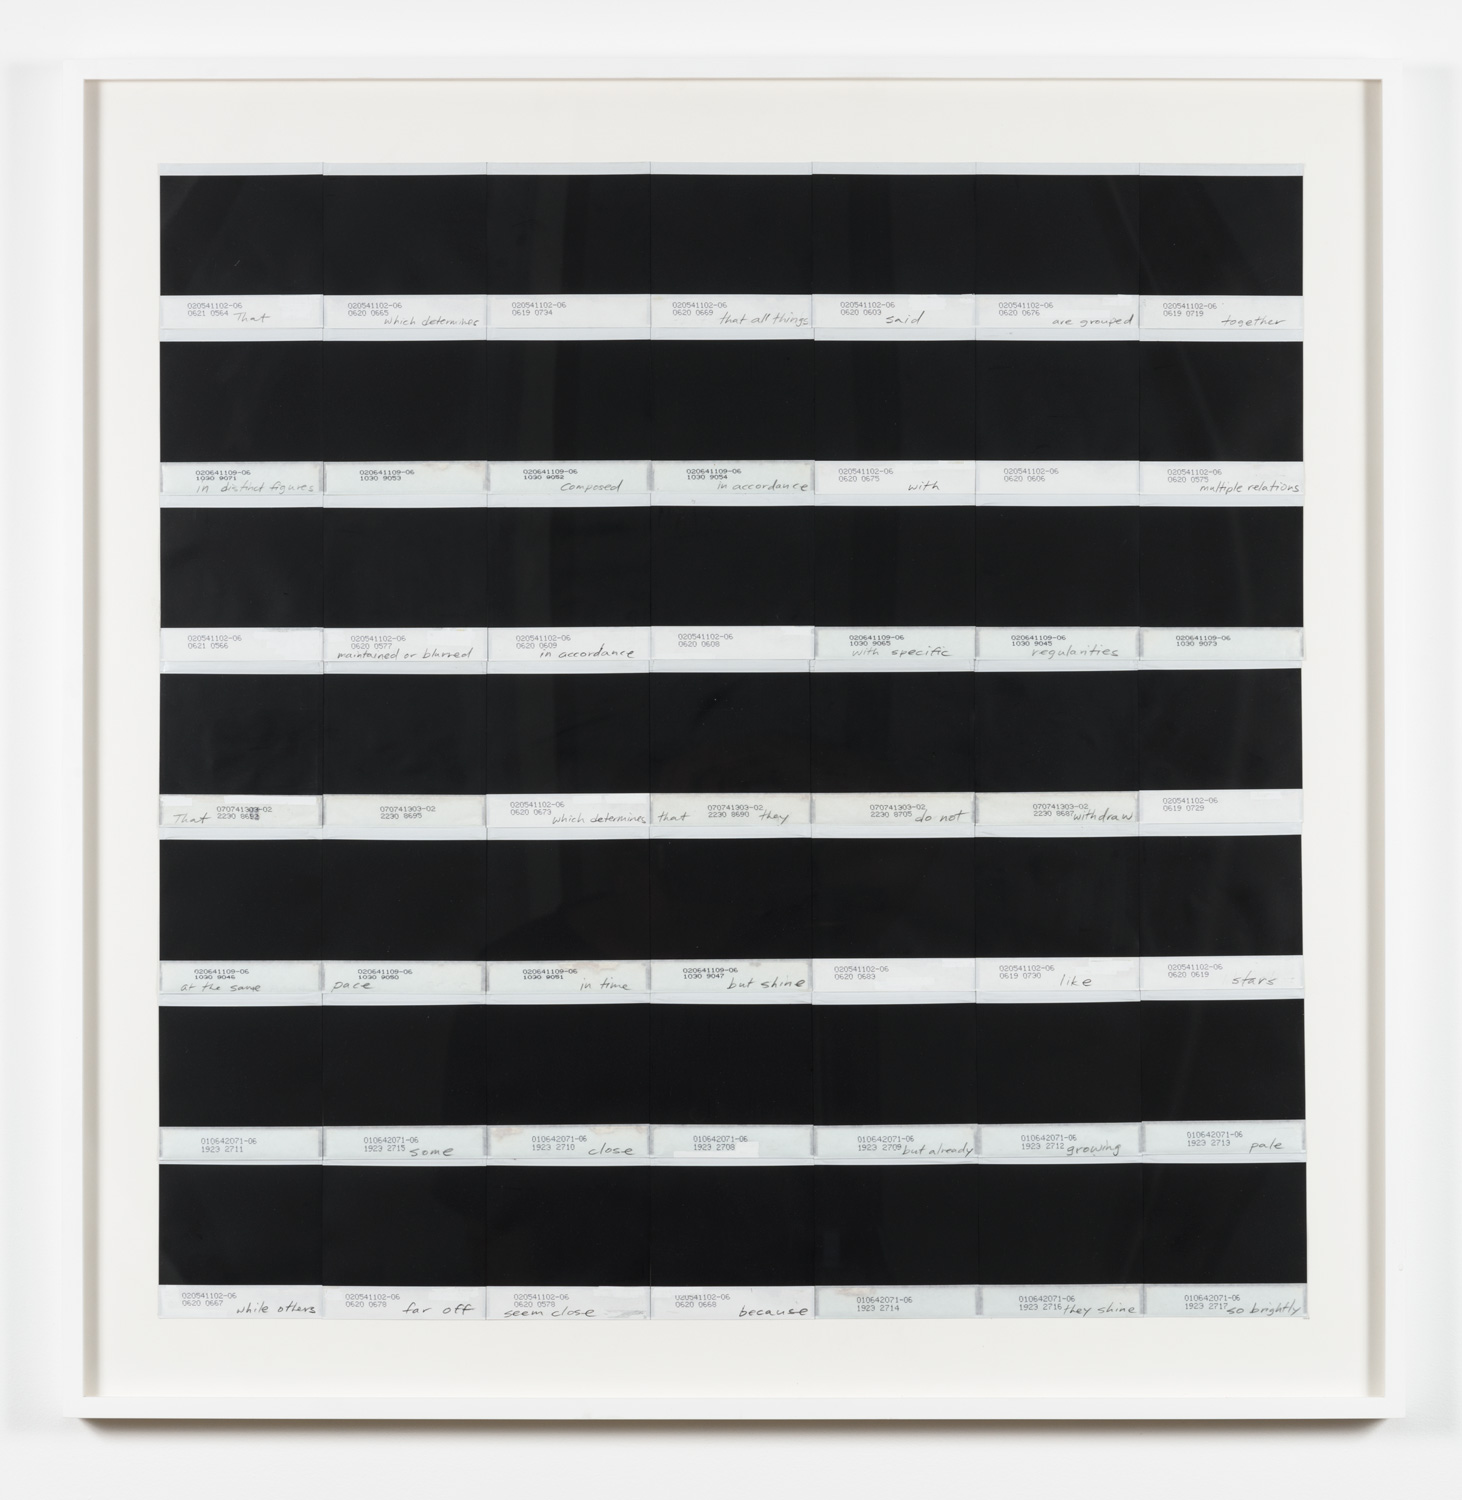 York Chang   Of Distant Stars I (Foucault's Poem)  (2015) 98 pieces of reversed polaroid 600 film, circa 1987, on museum rag paper, 33 x 32.5in.